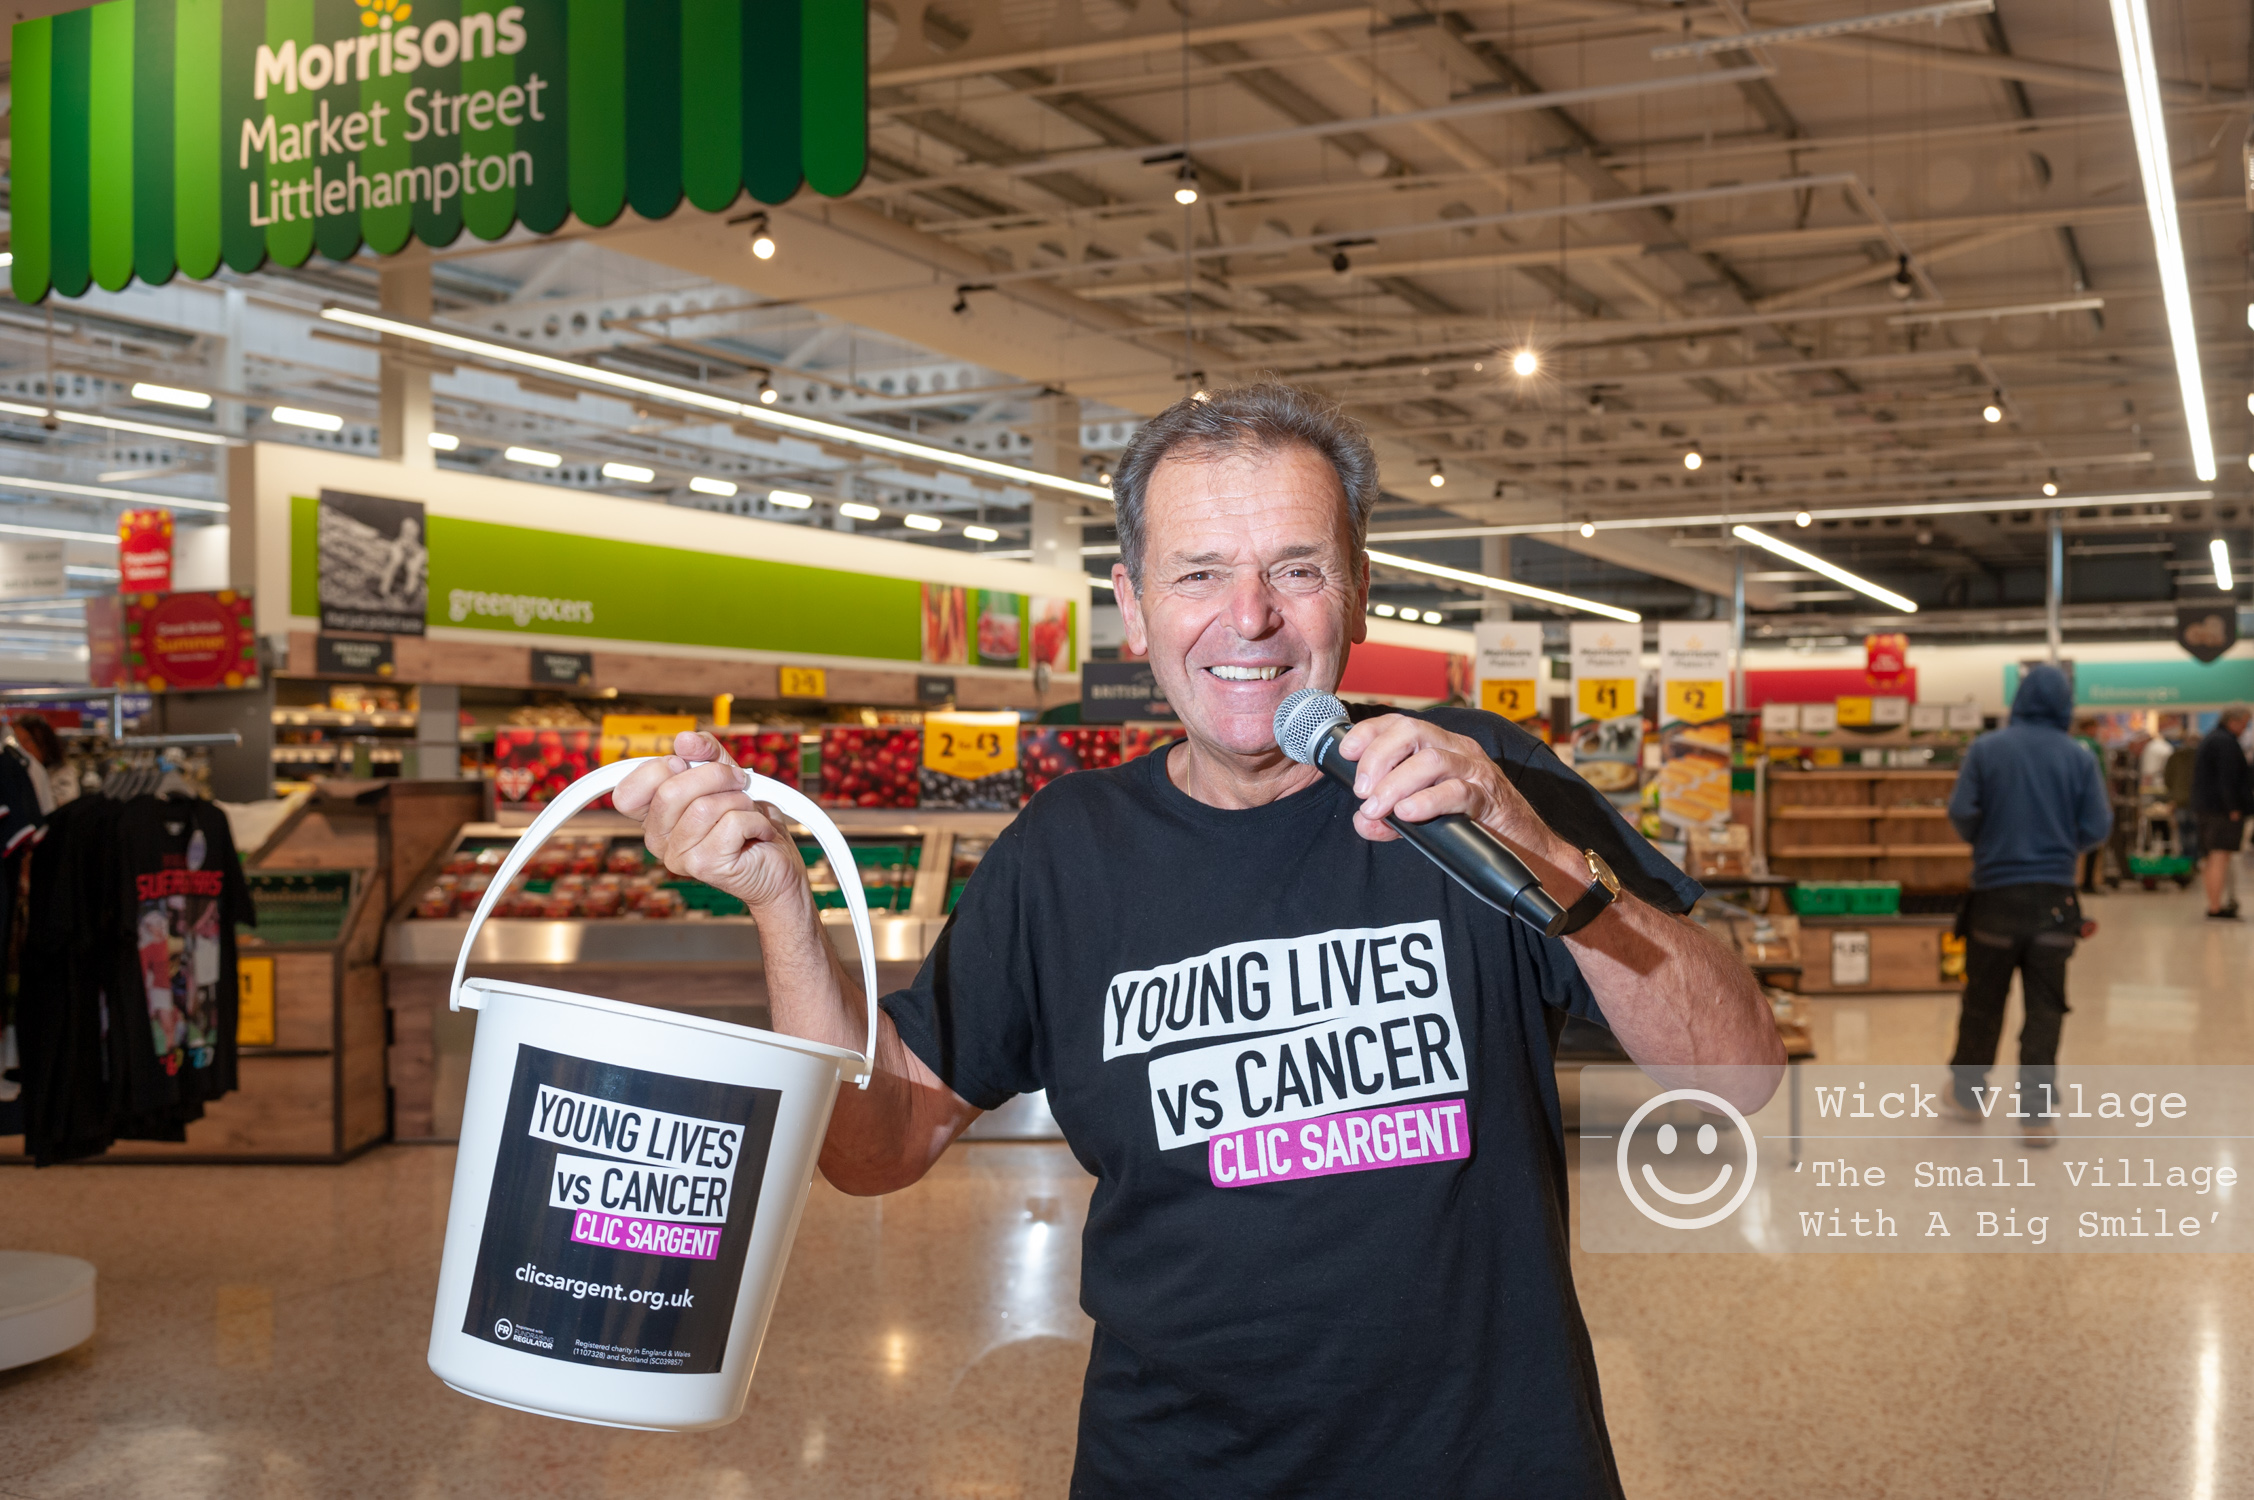 Charity supermarket singer Geoff Davis at the Morrisons store in Littlehampton, West Sussex. Photo's ©  Scott Ramsey - Sussex Photographer  and taken on behalf of the Wick Village Traders Association.